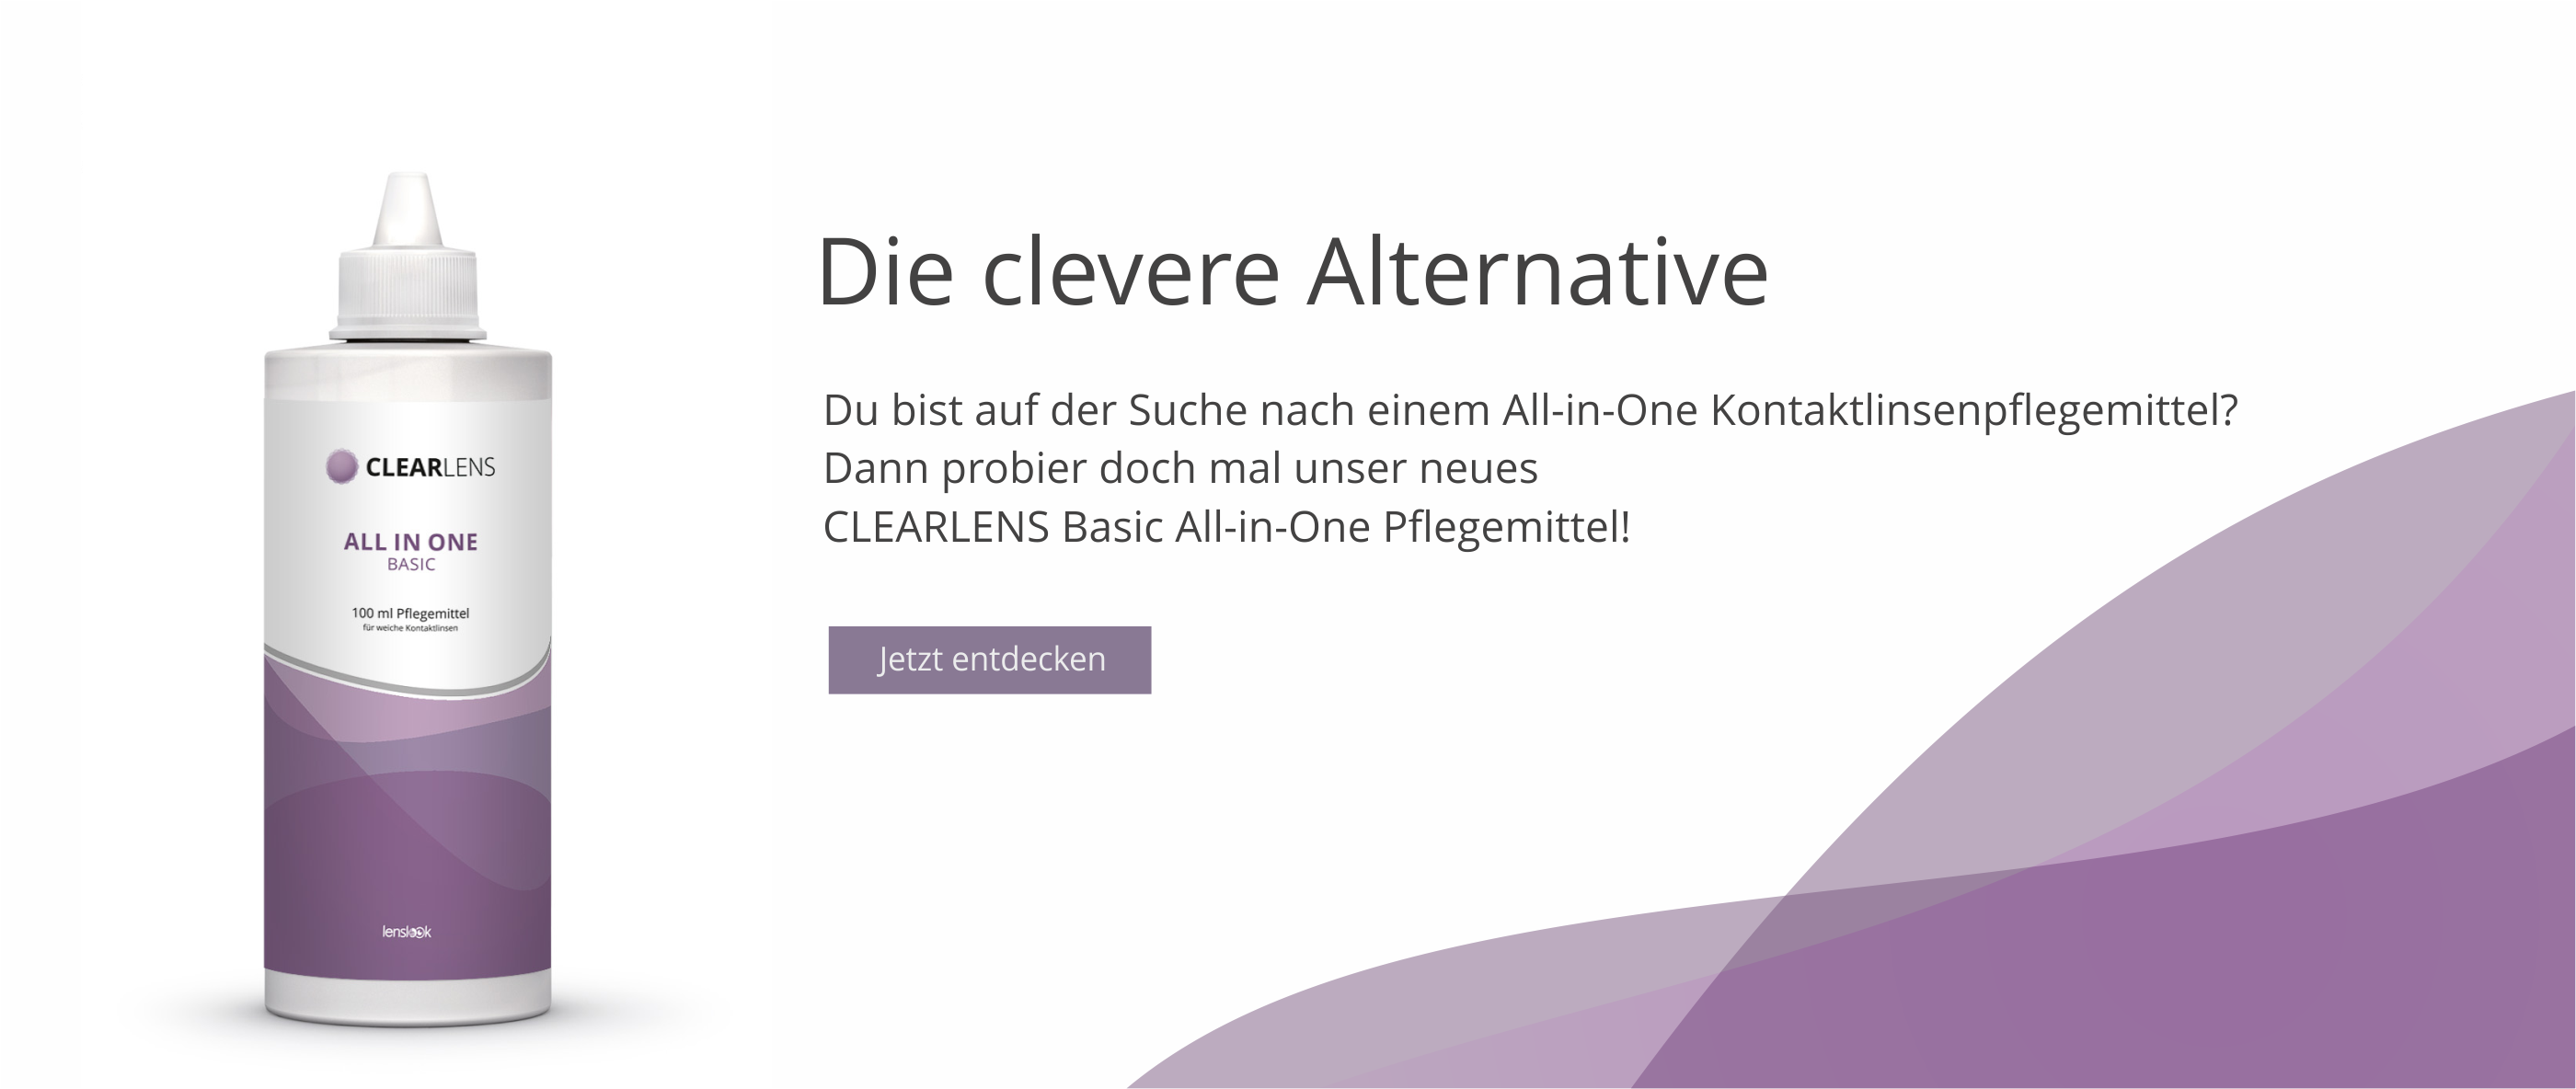 ClearLens_Alternative_Basic_100ml